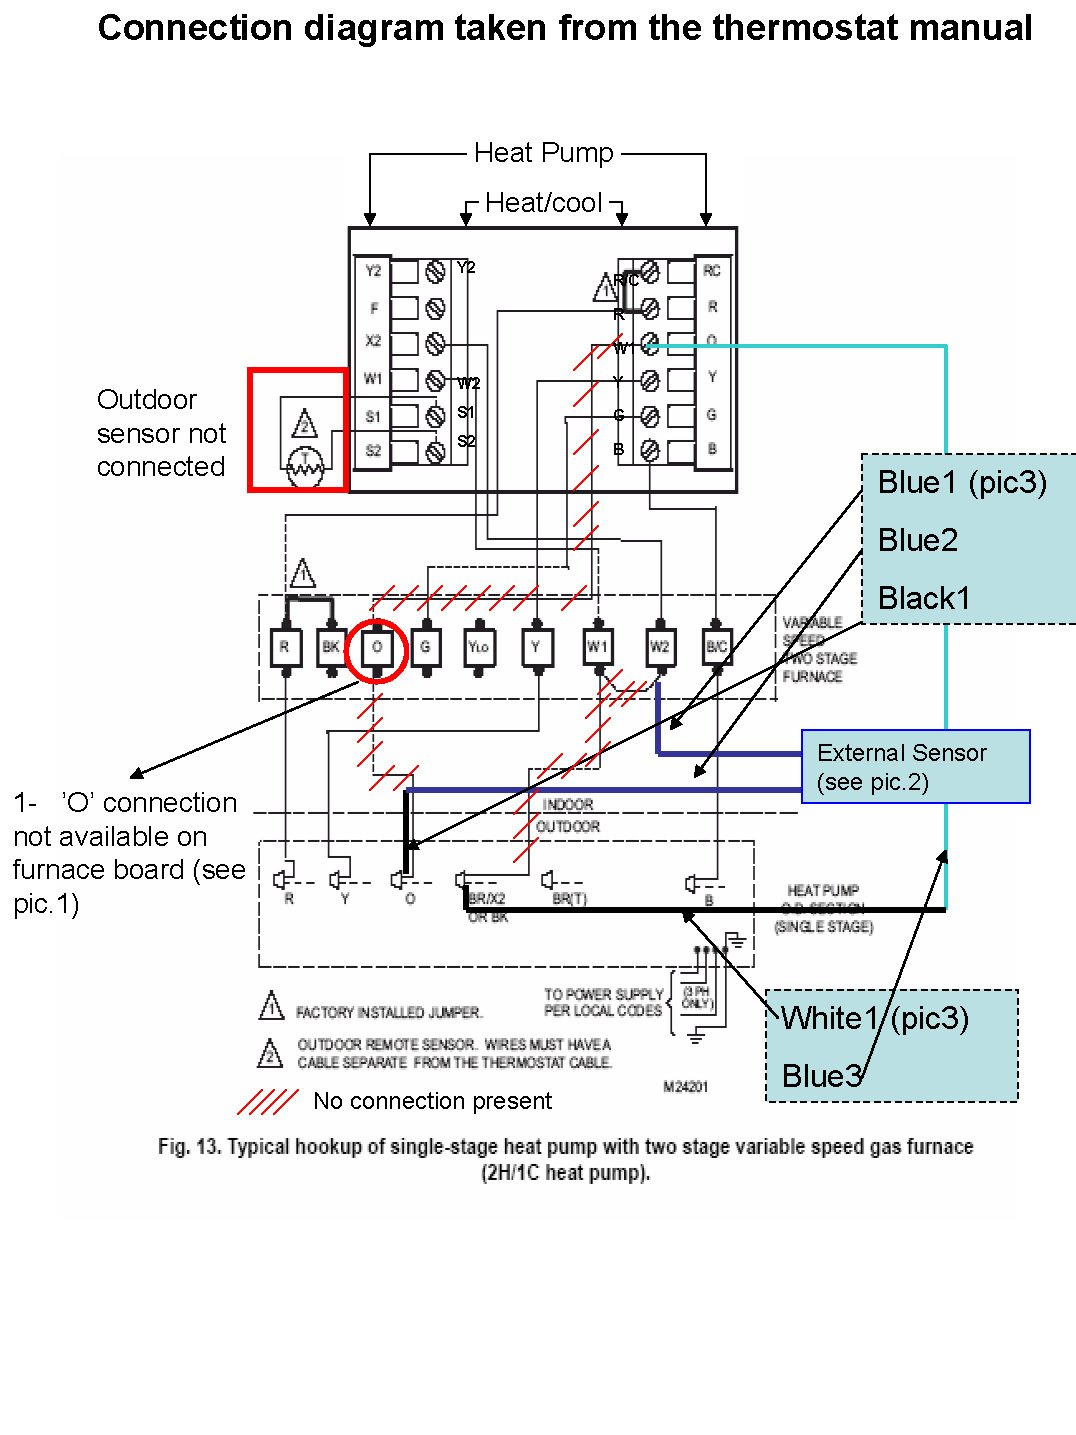 2009-12-12_173414_Furnace_connections_Page_1  Gas Furnace Thermostat Wiring Diagram Wires on roll out switch, coleman evcon, typical central ac, for lennox, blower motor, 2 wire thermostat, gms80453anbd, mobile home intertherm, 120 for old, air temp,